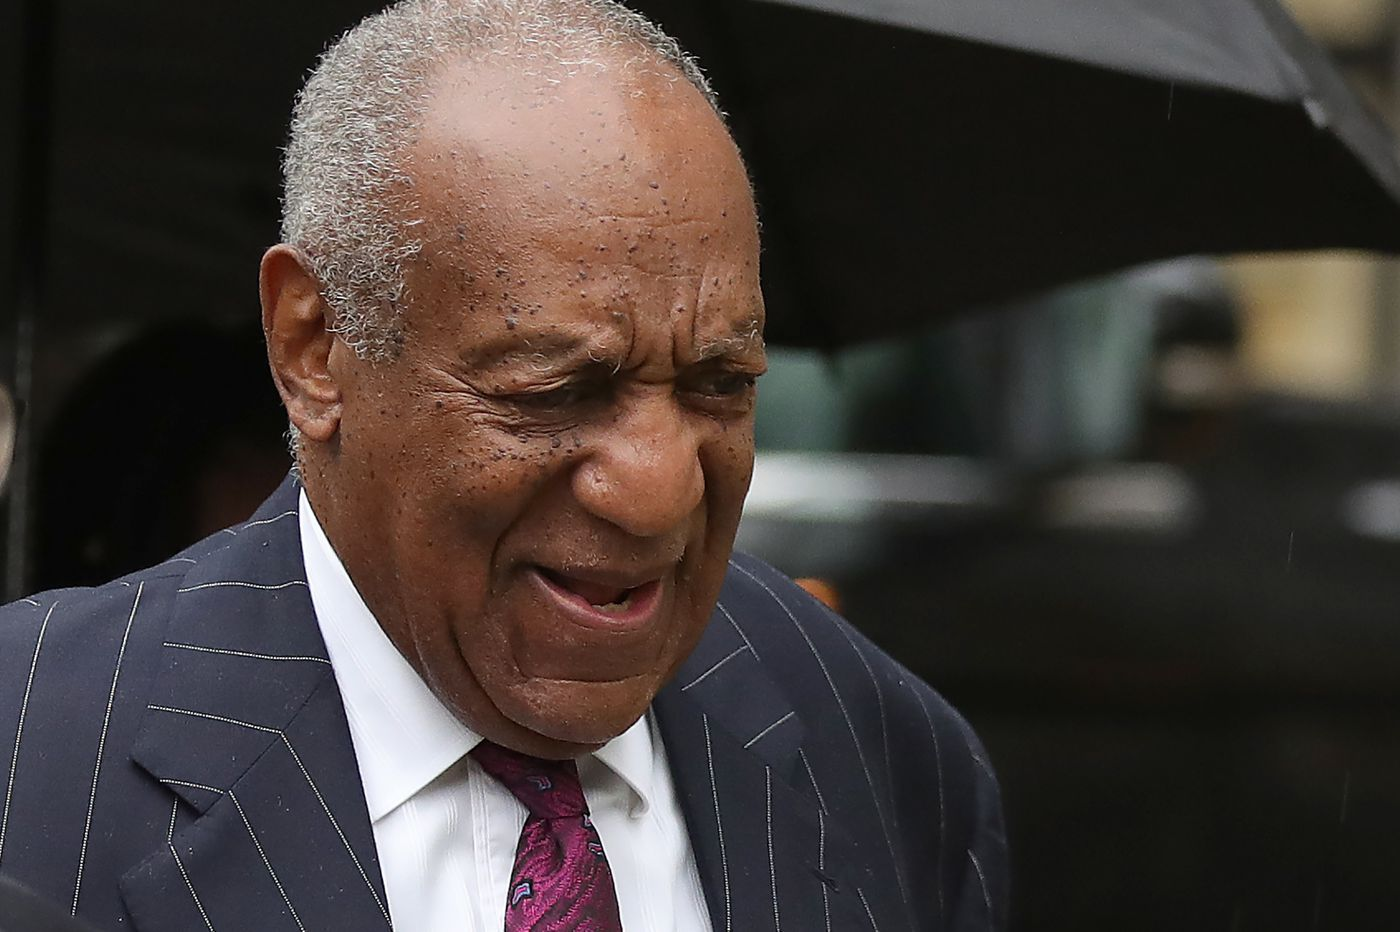 Bill Cosby loses bid to overturn his sexual assault conviction